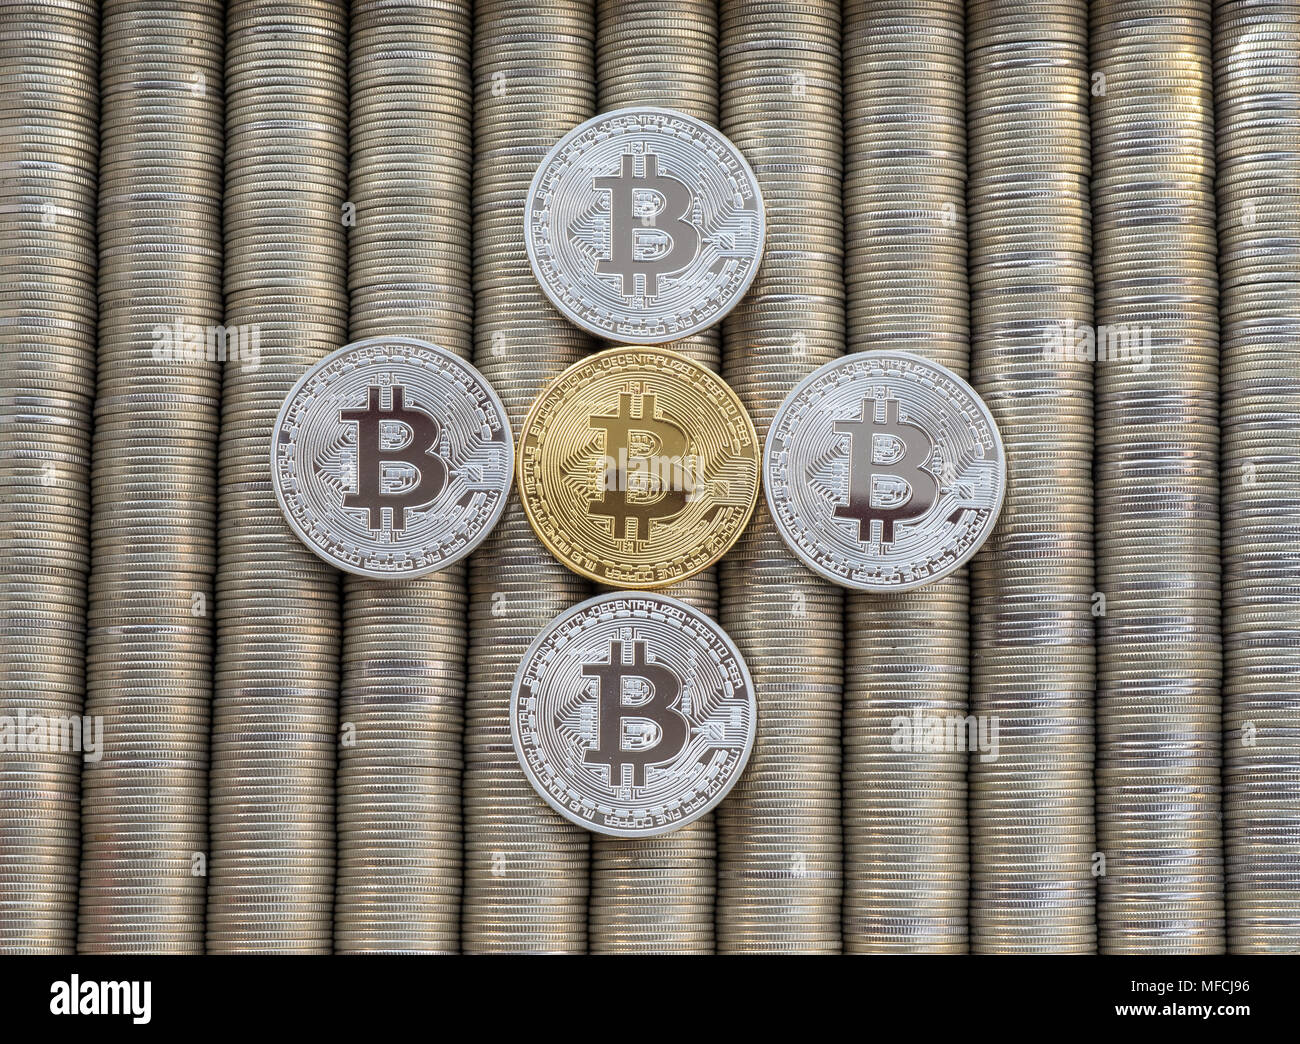 Silver Gold Crypto coins bitcoin BTC. Metal coins are laid out in a smooth background to each other, close-up view from the top, crypto currency excha - Stock Image